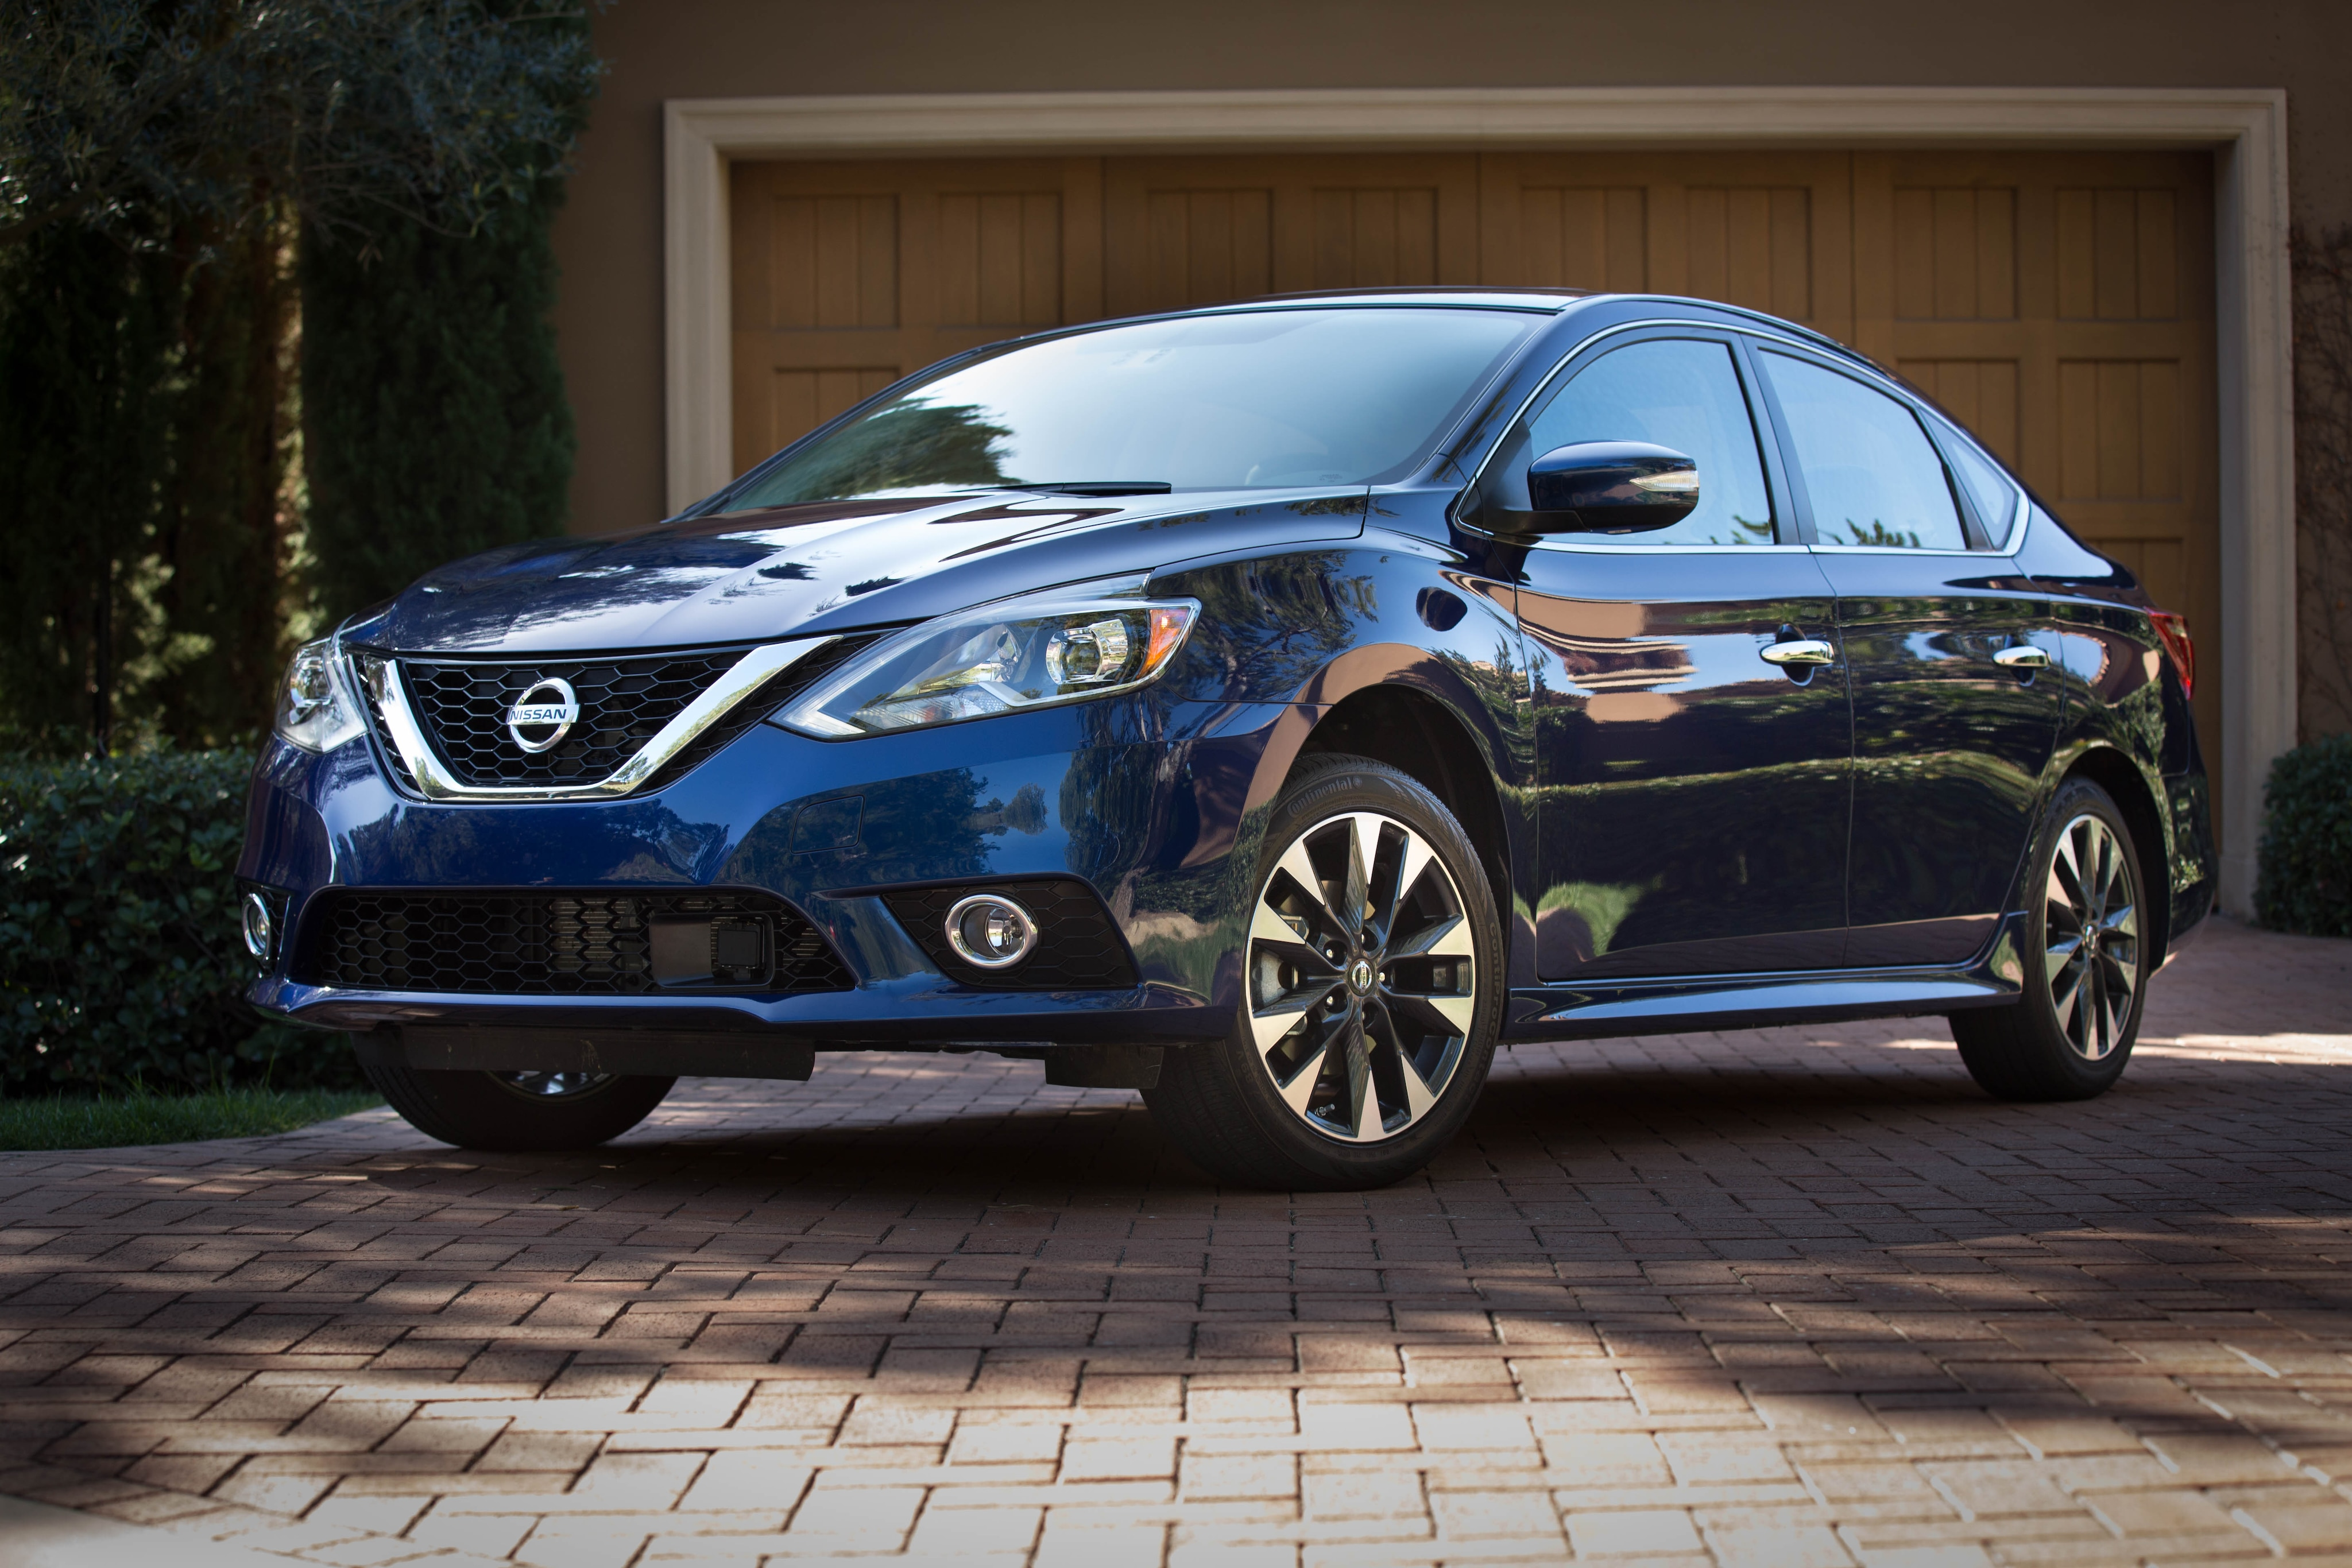 Elevate Your Every Day With A Sedan That Proves The Good Life Is Well  Within Reach. Head Turning Good Looks, Available Advanced Driving  Technologies, ...